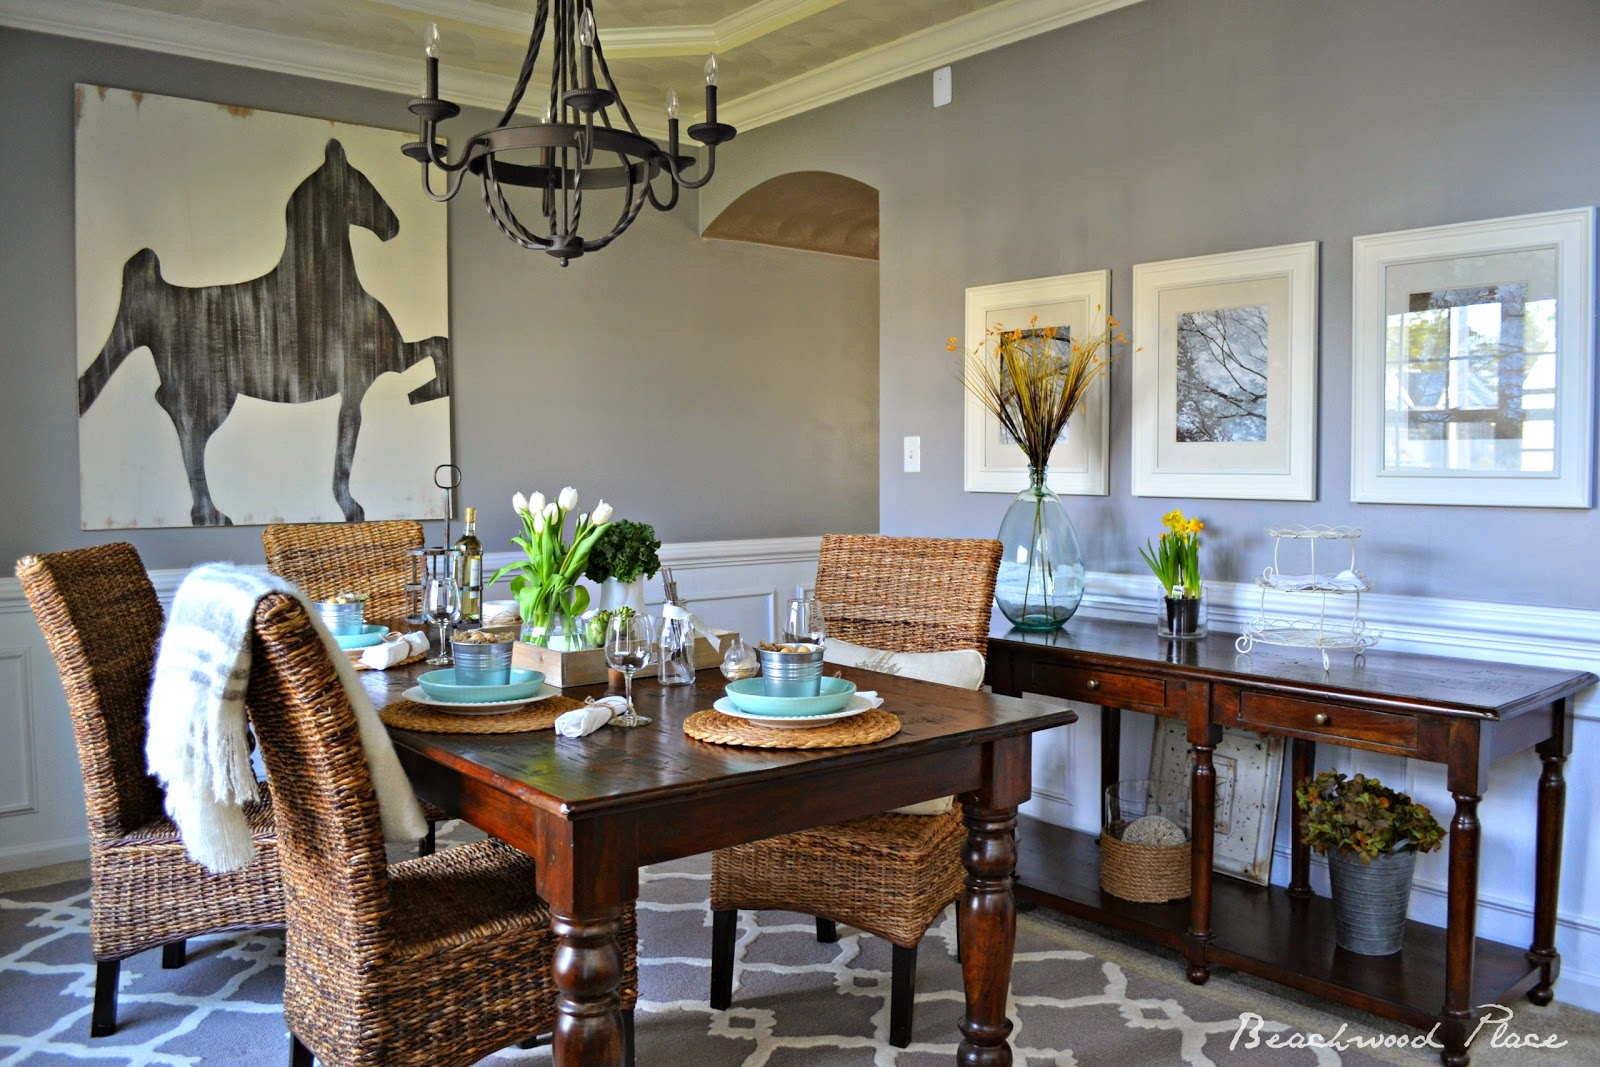 Beachwood Place Easter Dining - Beachwood dining table